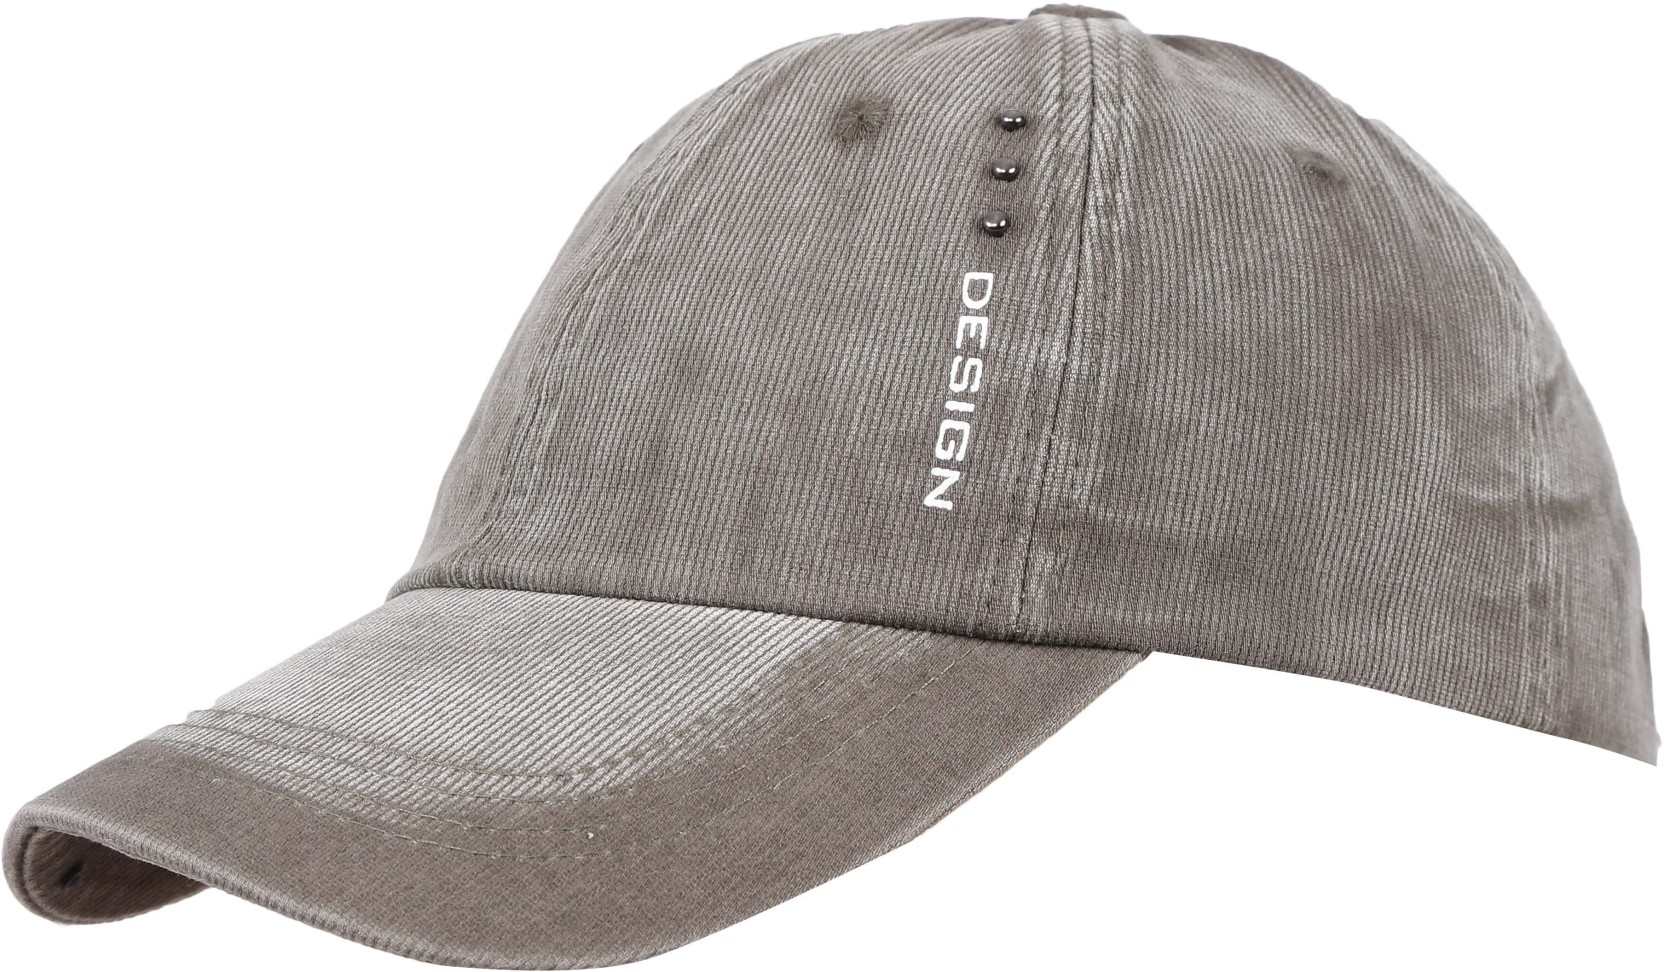 ae27883a3 FabSeasons Unisex Washed / Faded Cotton Corduroy Baseball Summer Cap Cap.  ADD TO CART. BUY NOW